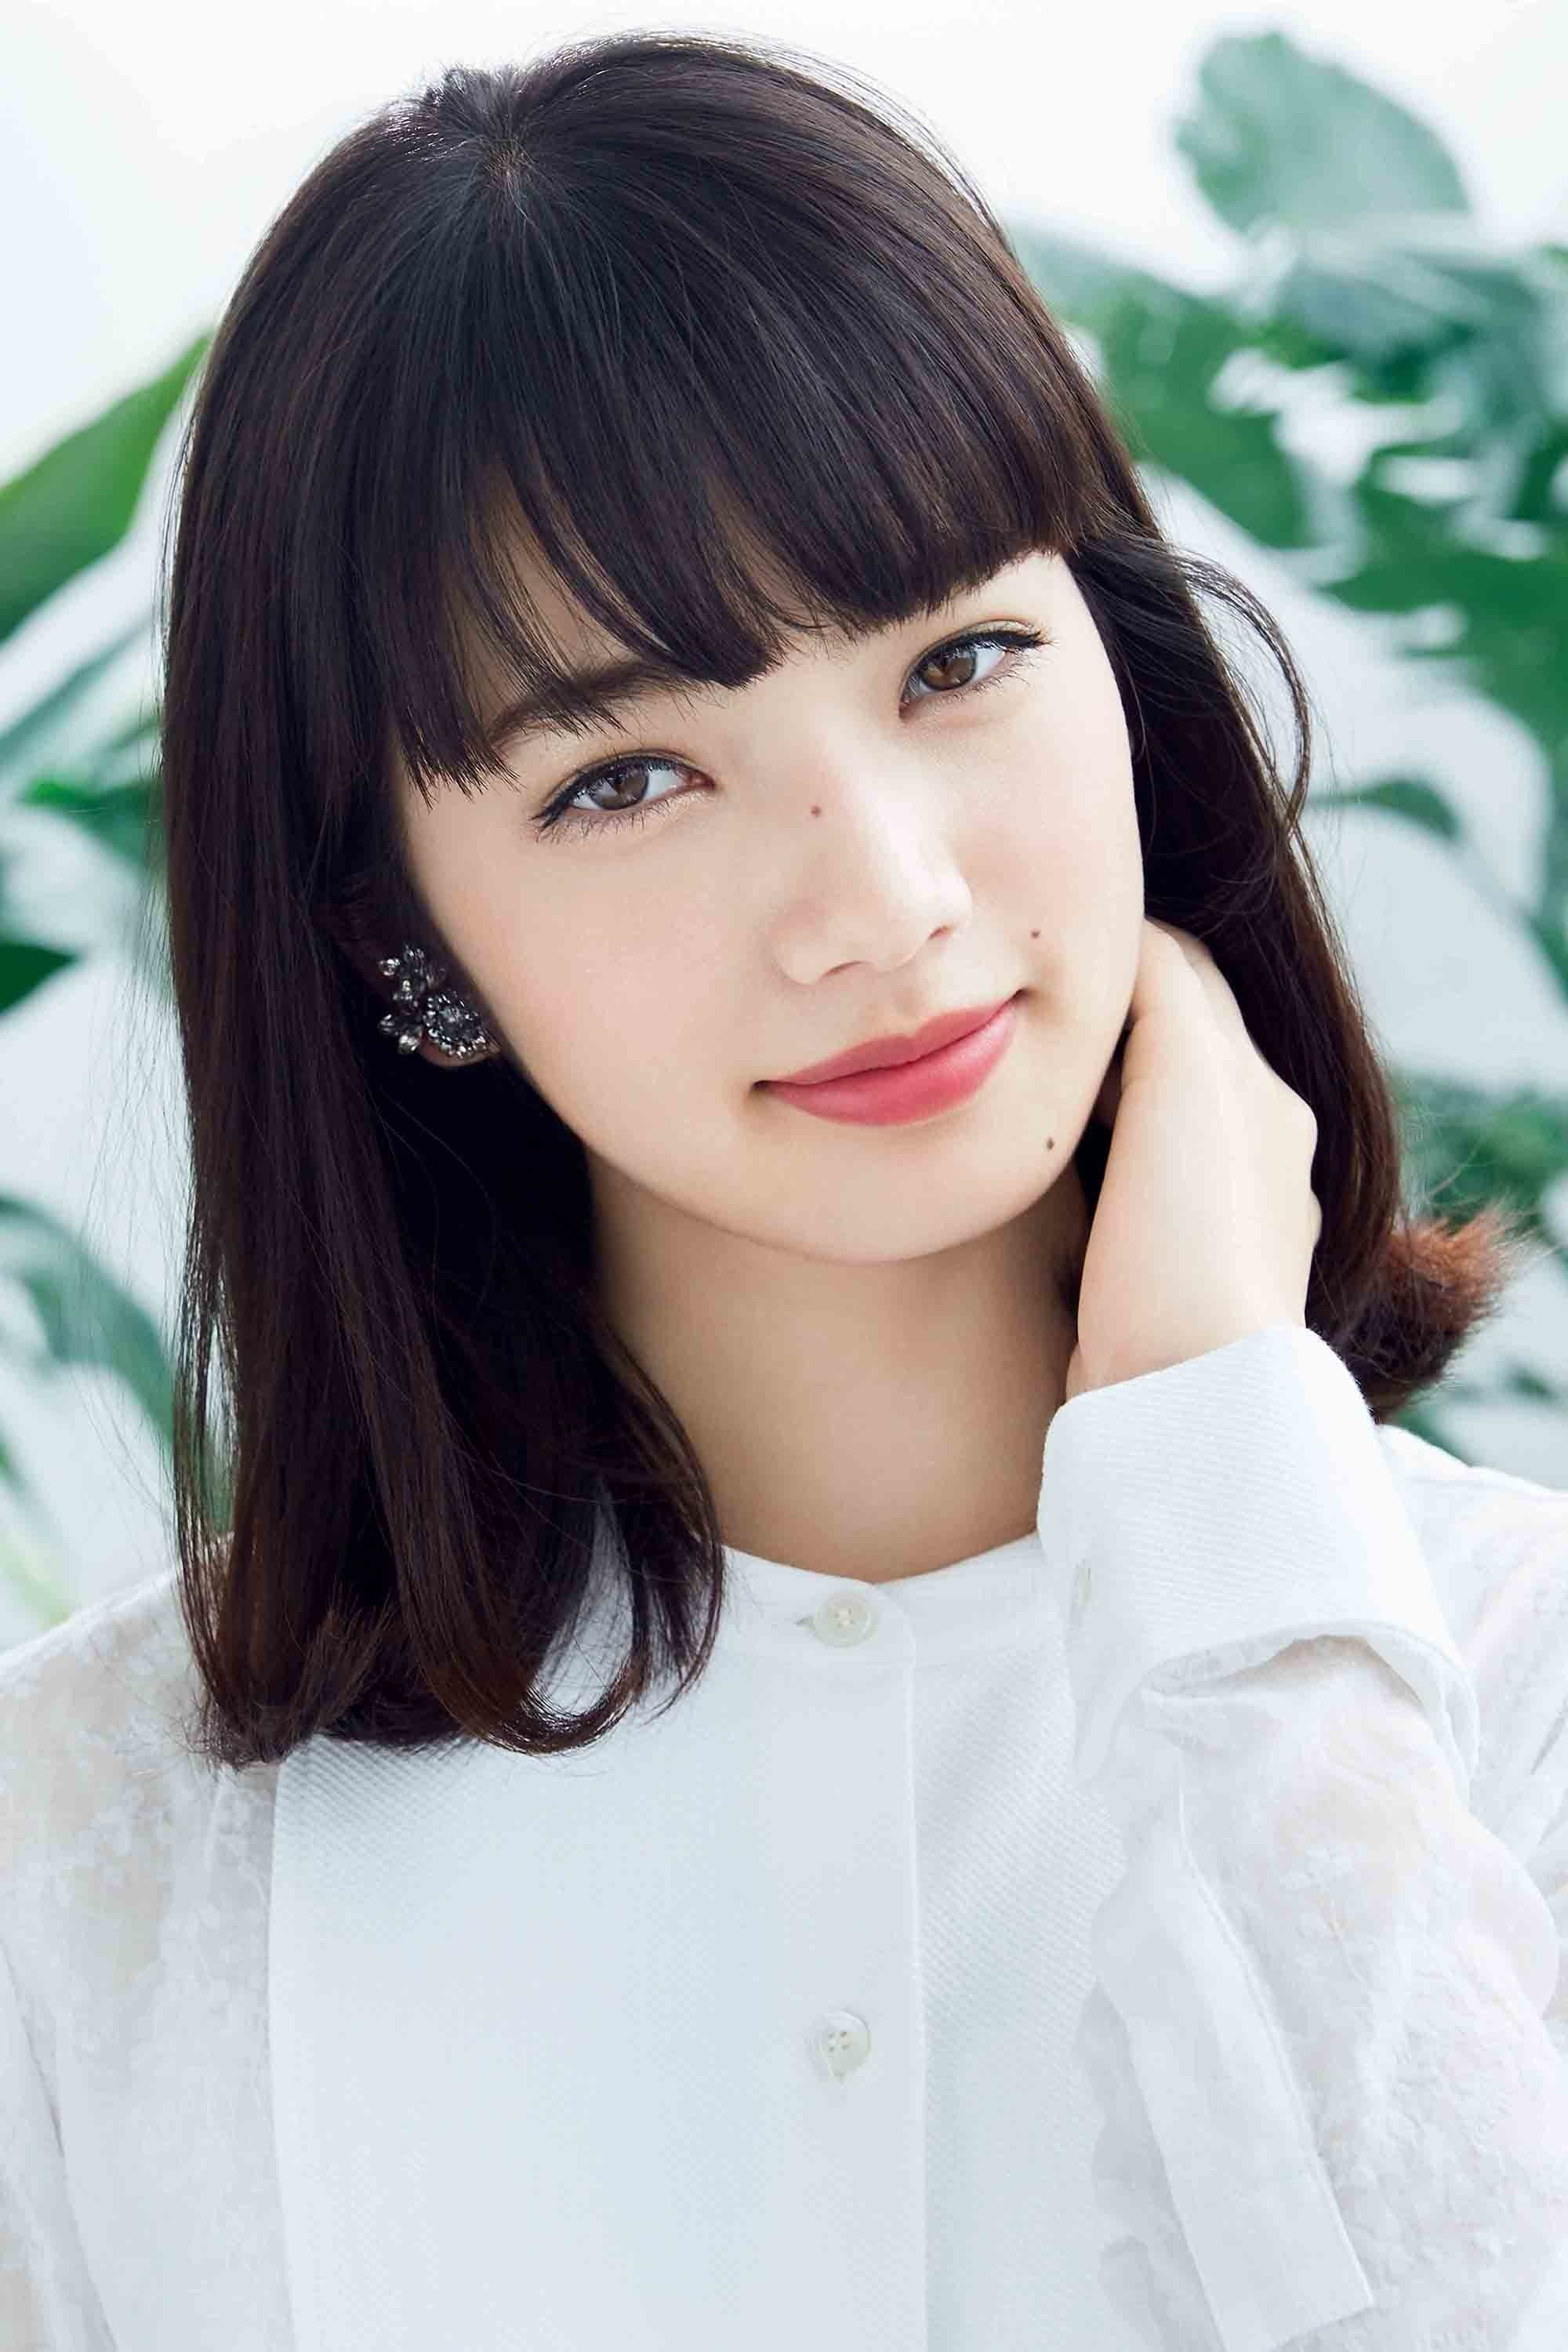 Nana Komatsu Profile Images The Movie Database Tmdb